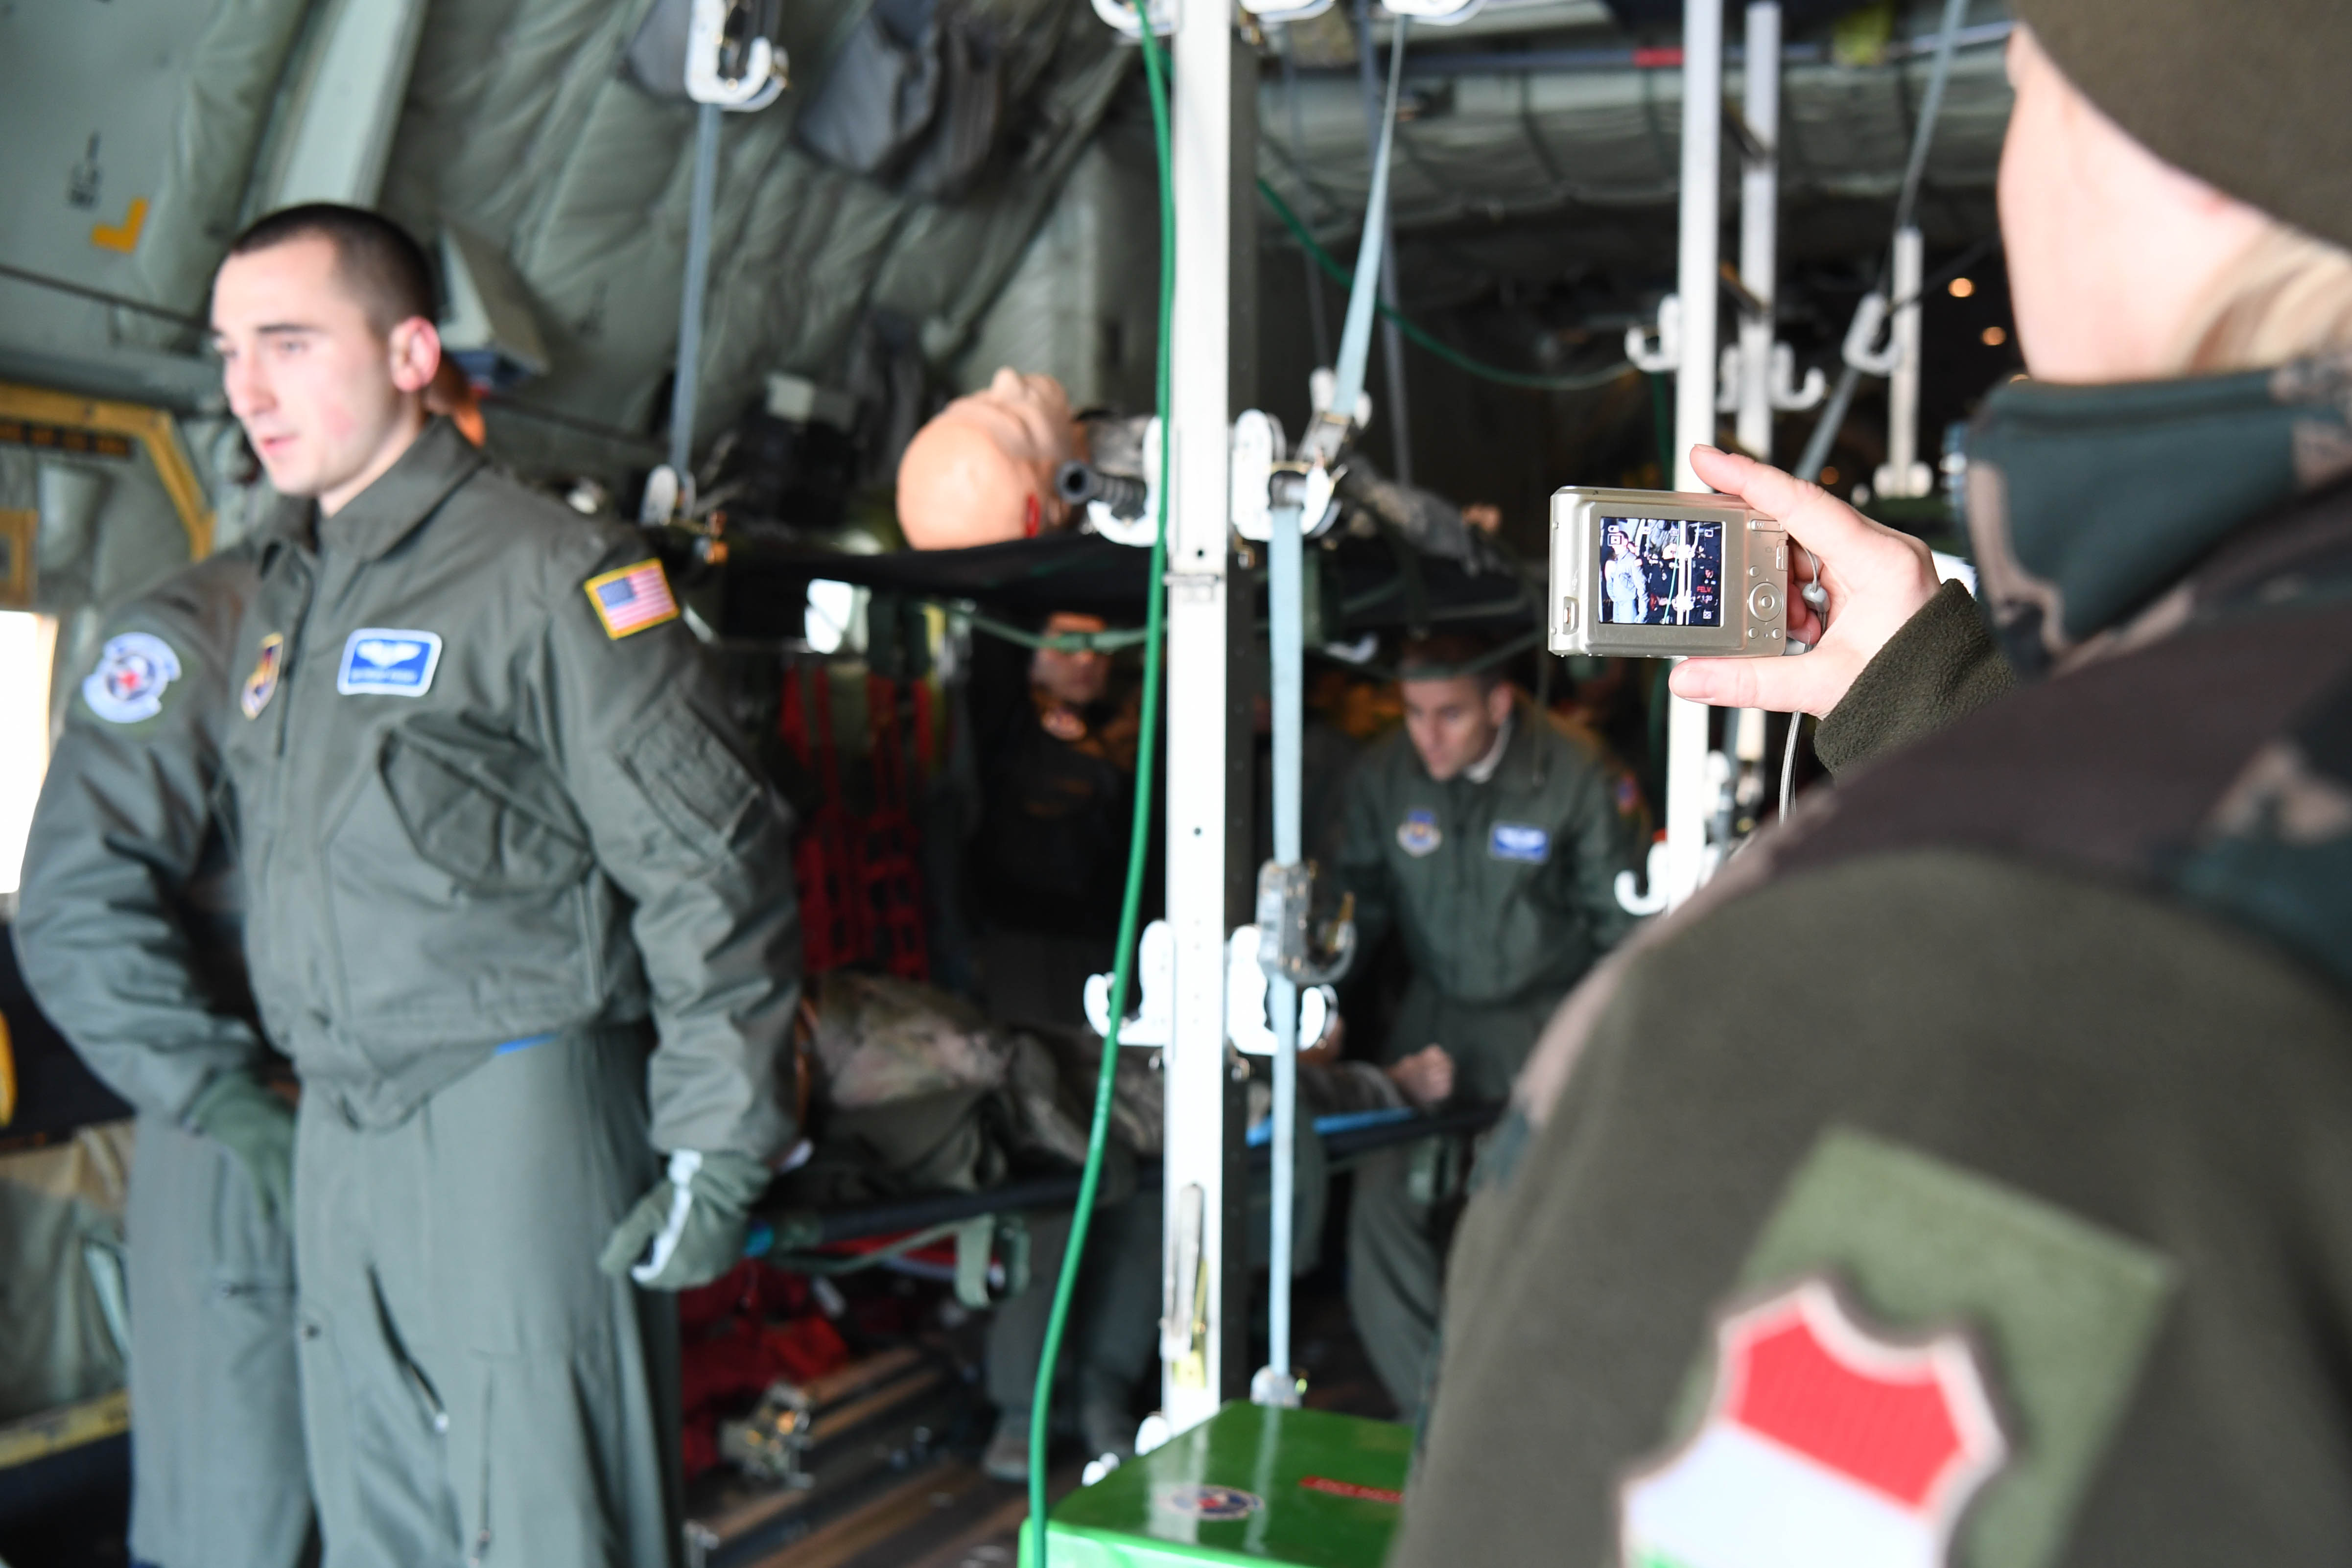 Hungarian air force 2nd Lt. Anita Huszarik takes a video of U.S. Air Force aeromedical team members demonstrating a patient being off-loaded on a C-130J Super Hercules at Ramstein Air Base, Germany, Jan. 18, 2018. Military aeromedical teams attended a week-long Partnership Flight Symposium to discuss aeromedical evacuation tactics, techniques and procedures while strengthening cooperation and enhancing relationships between African, European and United States military medical systems. (U.S. Air Force photo by Tech. Sgt. Rachelle Coleman)